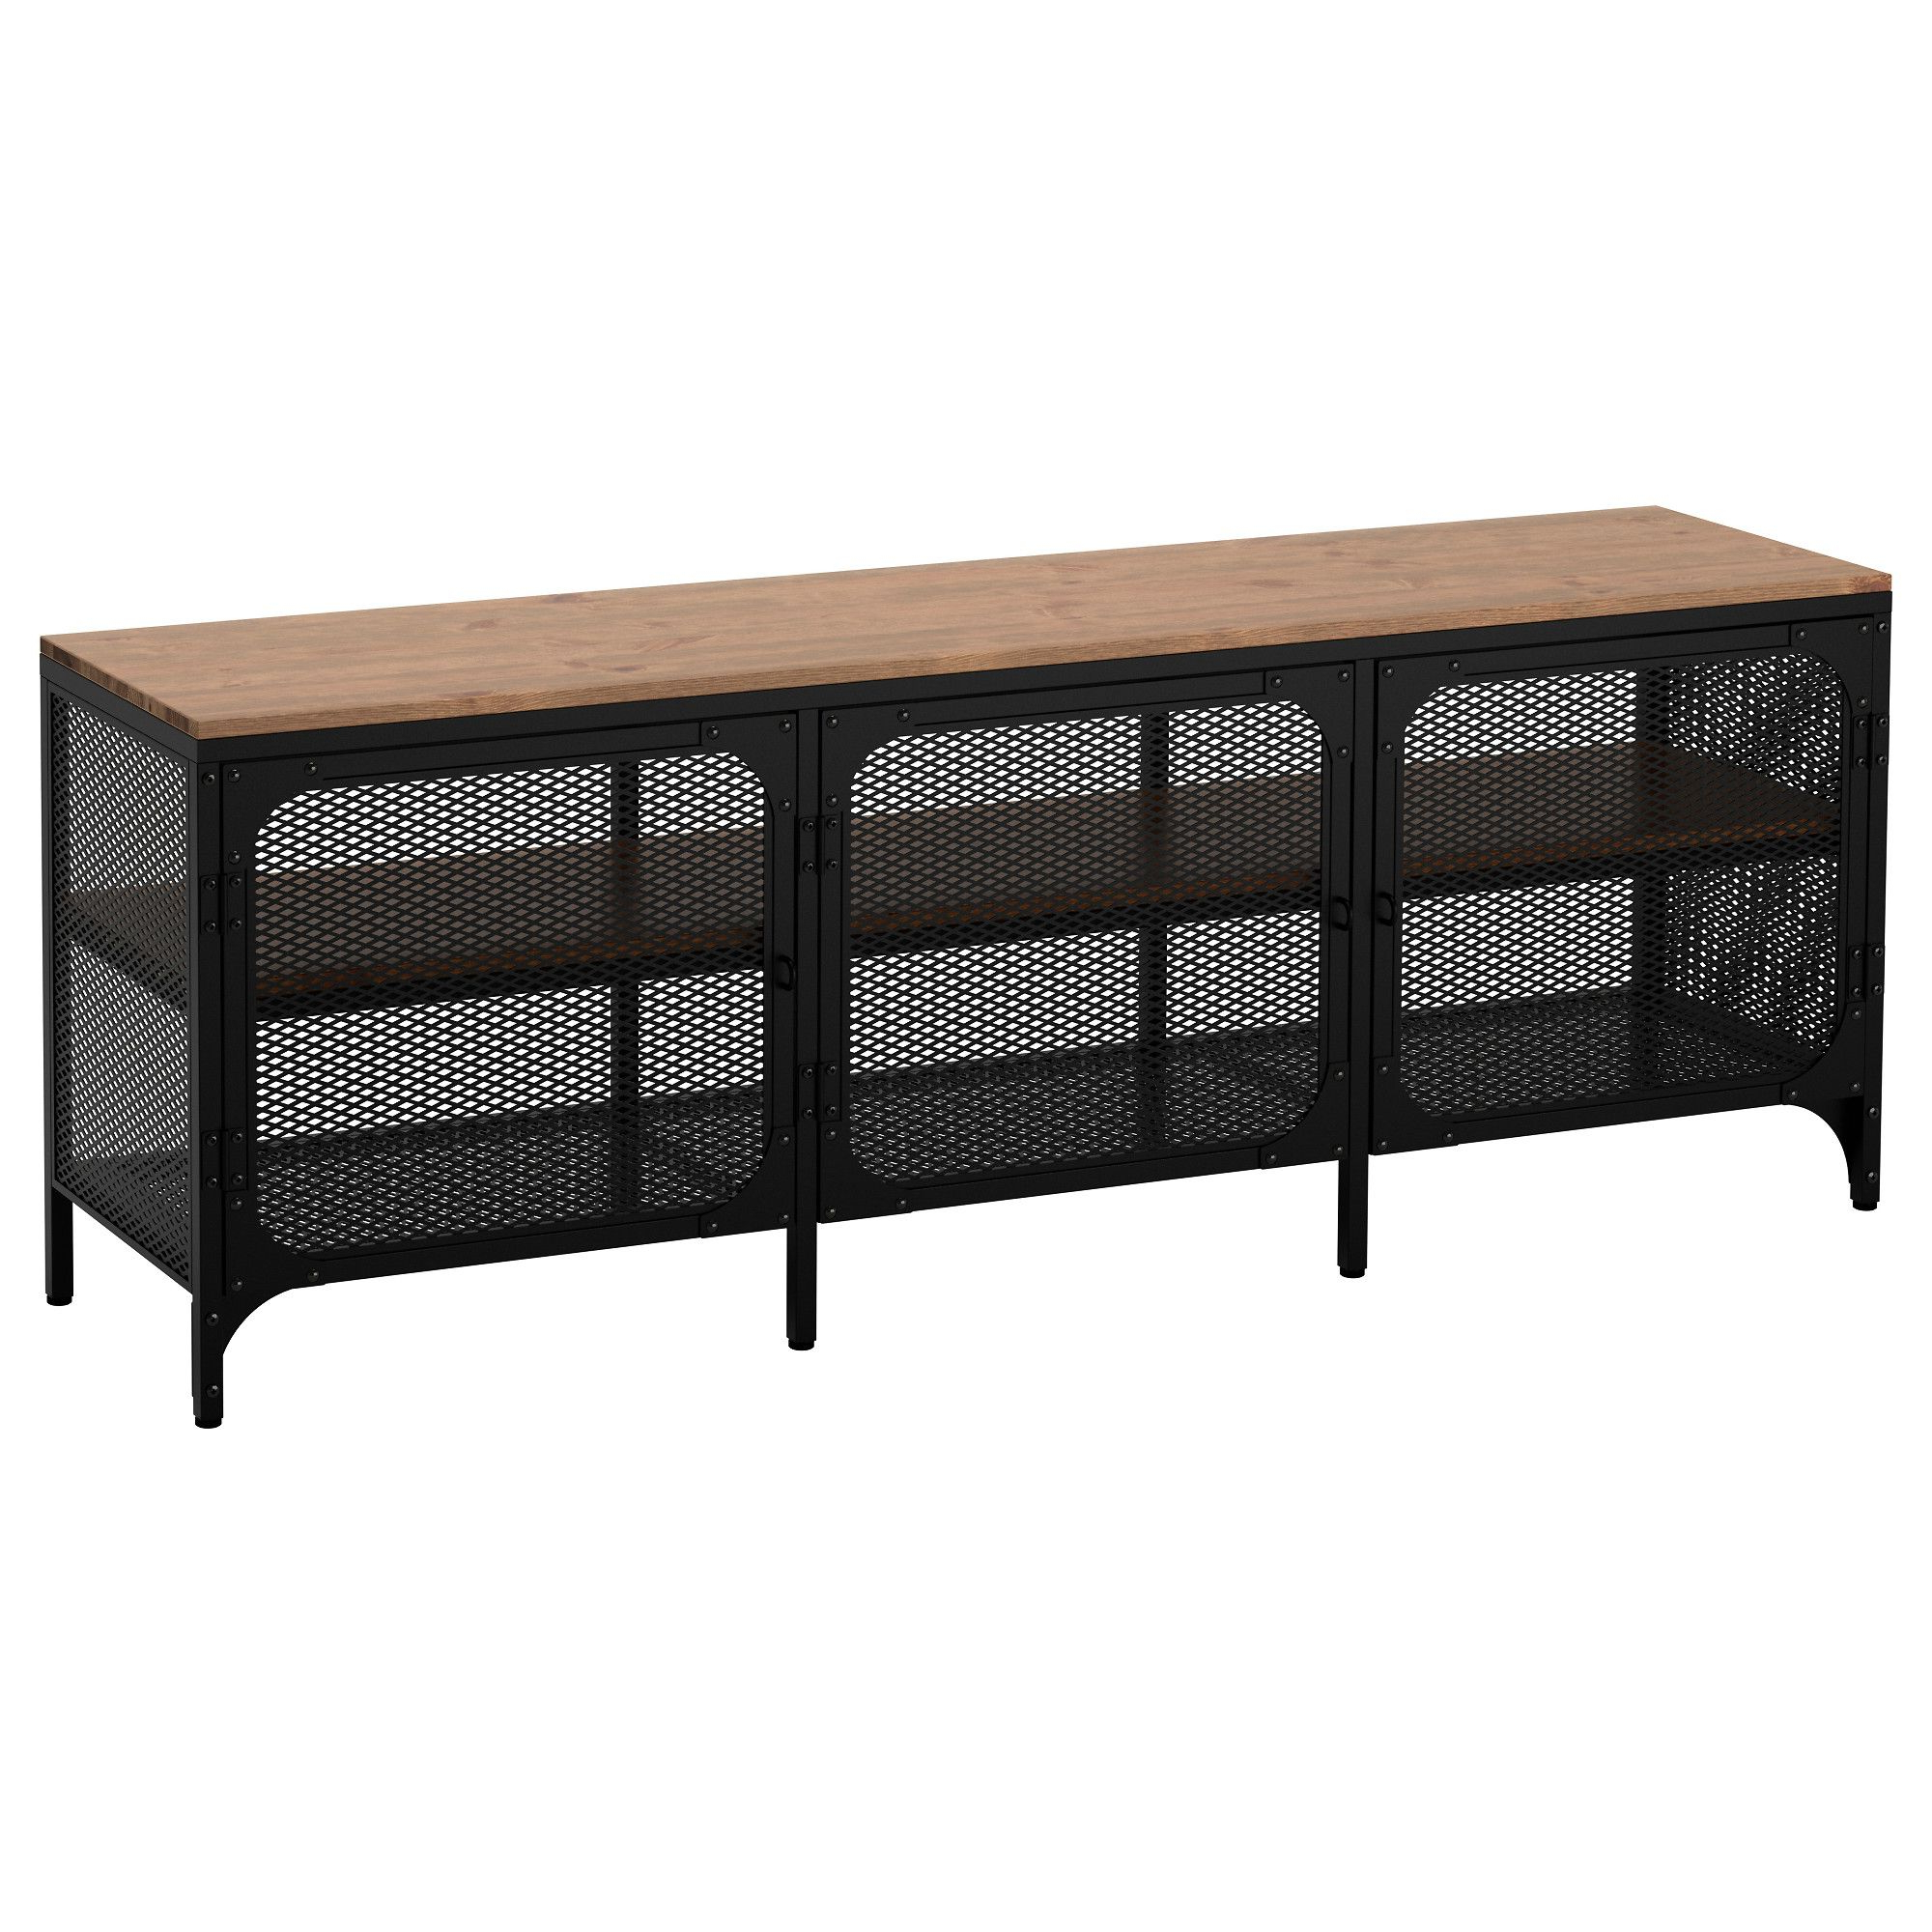 Ikea Fjallbo Black Tv Unit | For The Home | Tv Bench, Ikea Intended For Kado Corner Metal Mesh Doors Tv Stands (View 12 of 20)